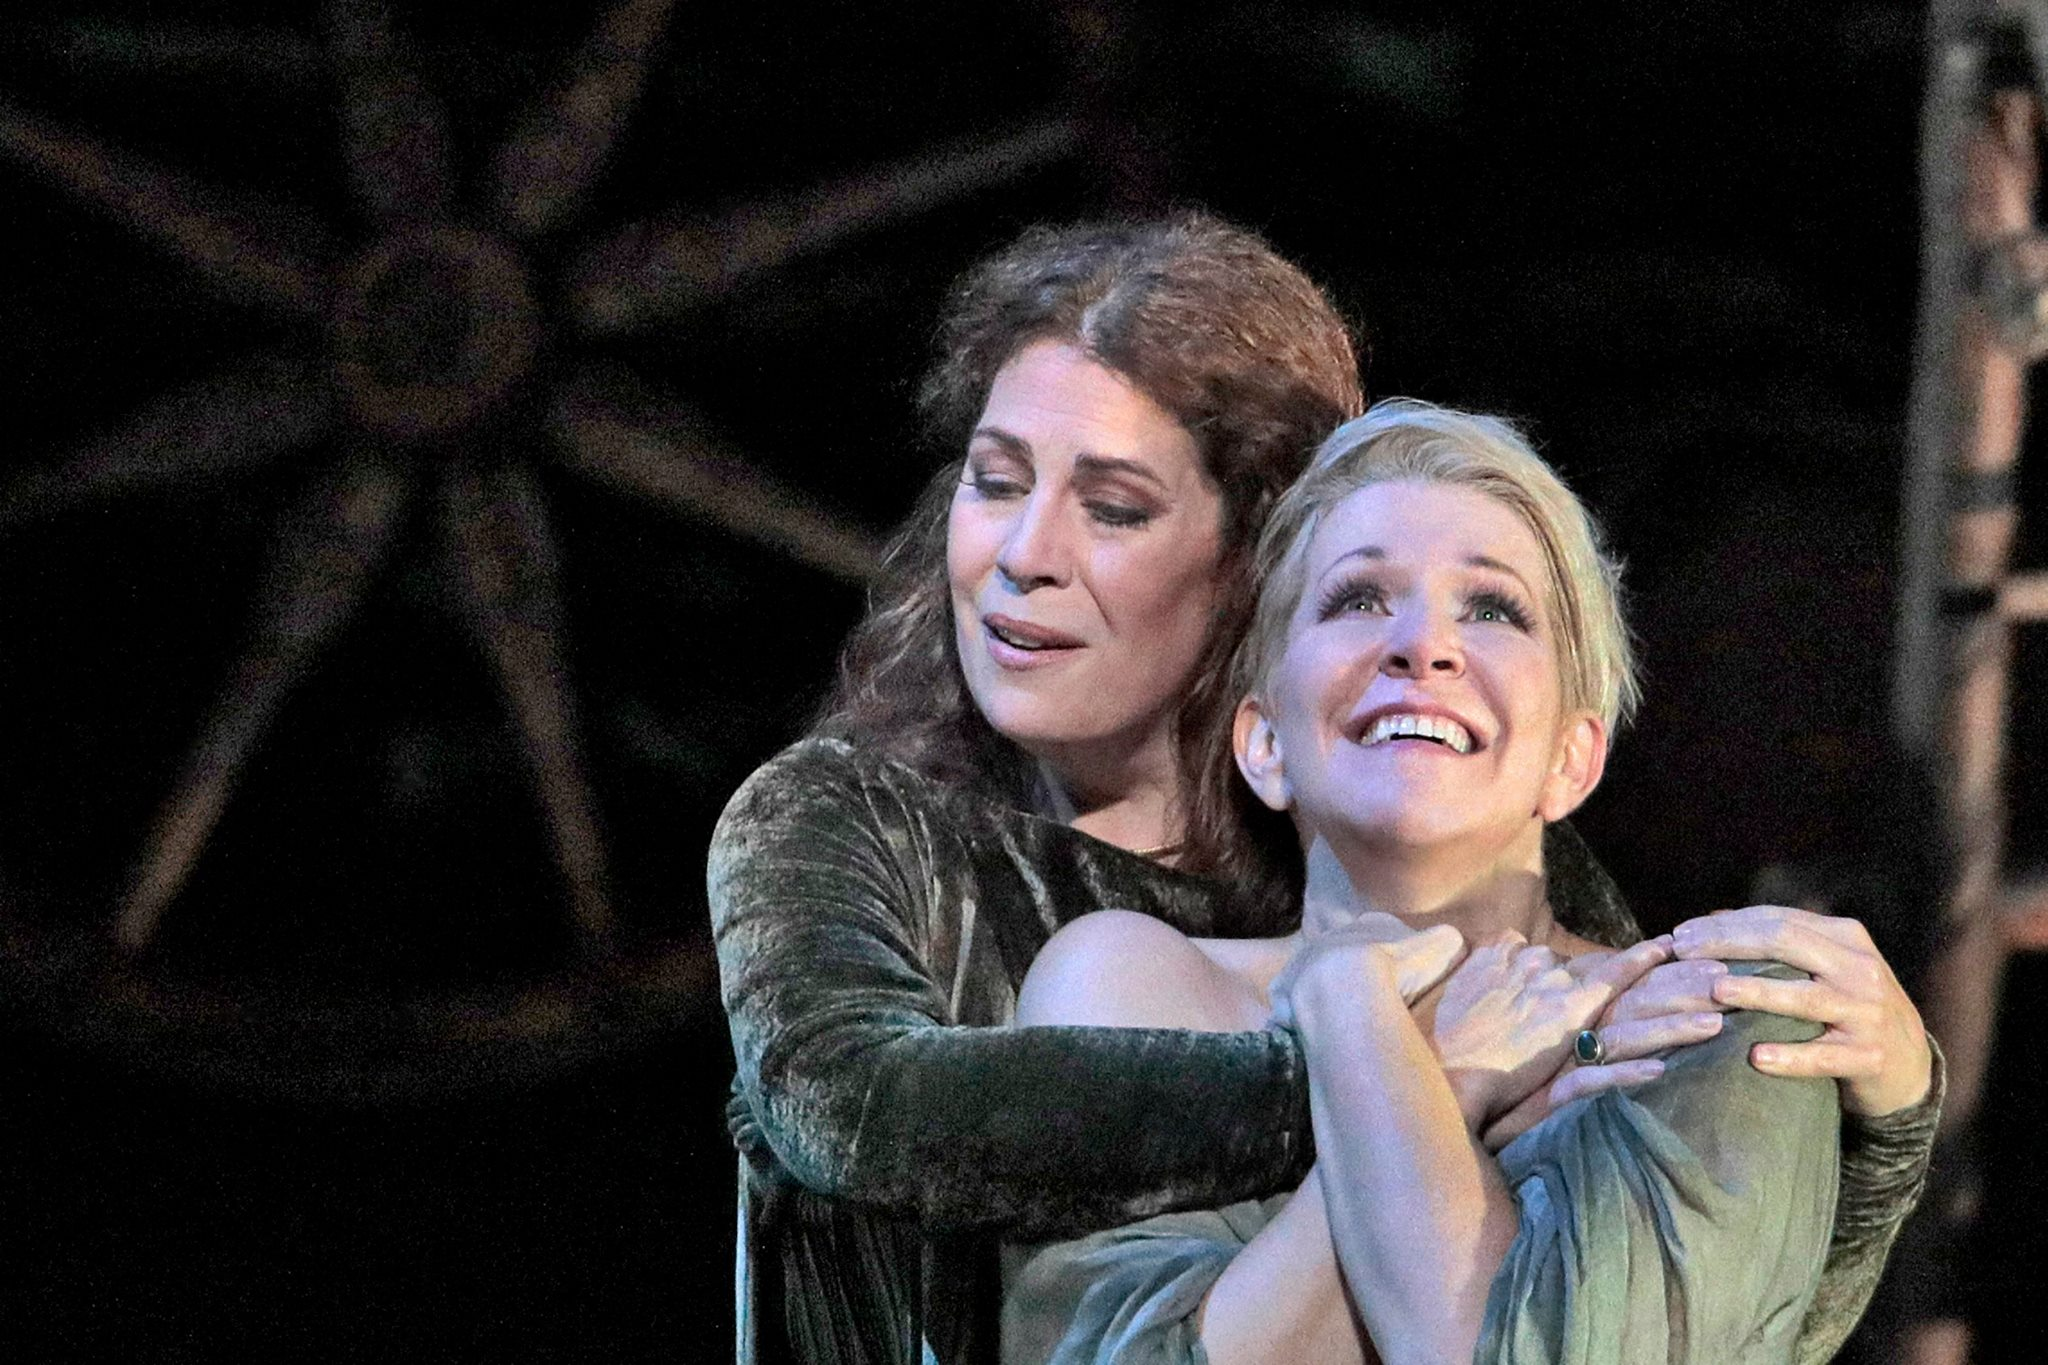 Sondra Radvanovsky as Norma and Joyce DiDonato as Adalgisa. Photo by Ken Howard and courtesy of the Metropolitan Opera.